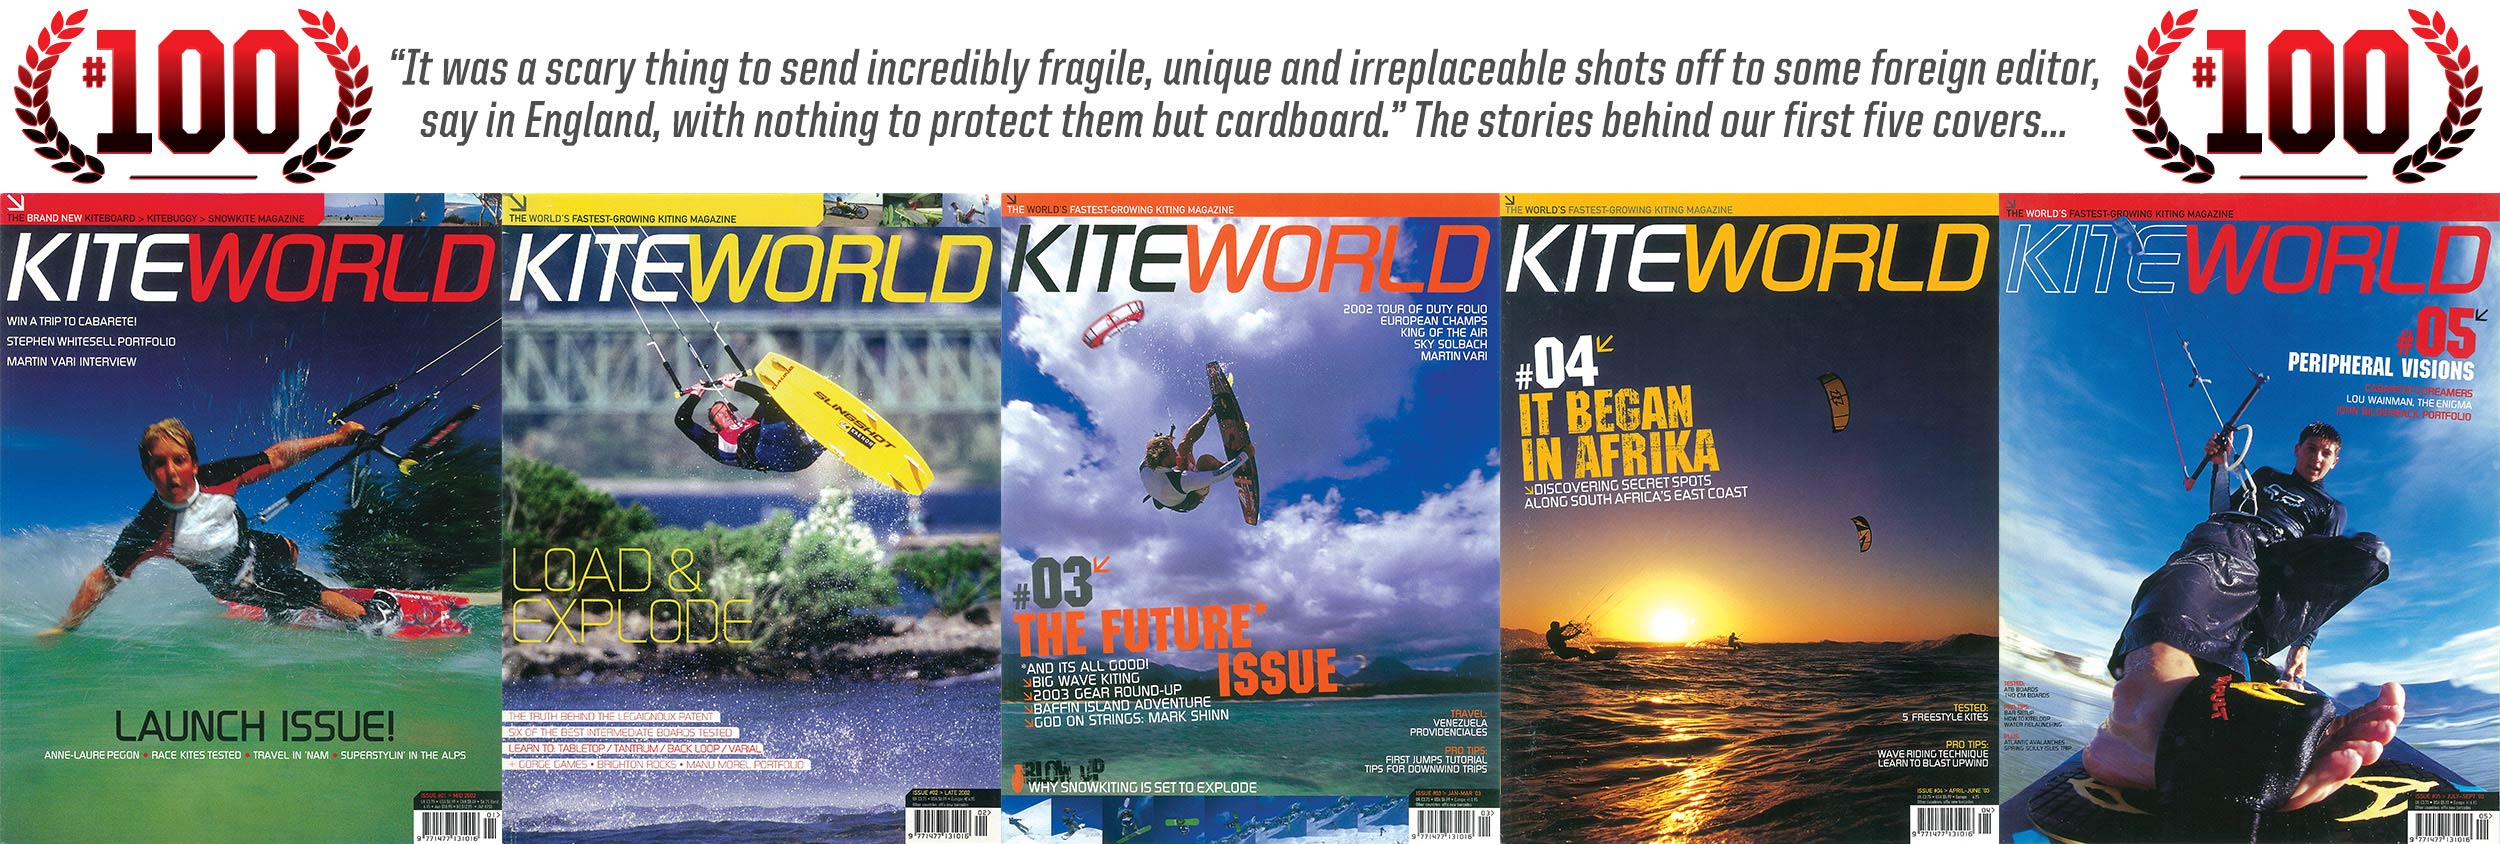 Kiteworld issue 100 first five covers